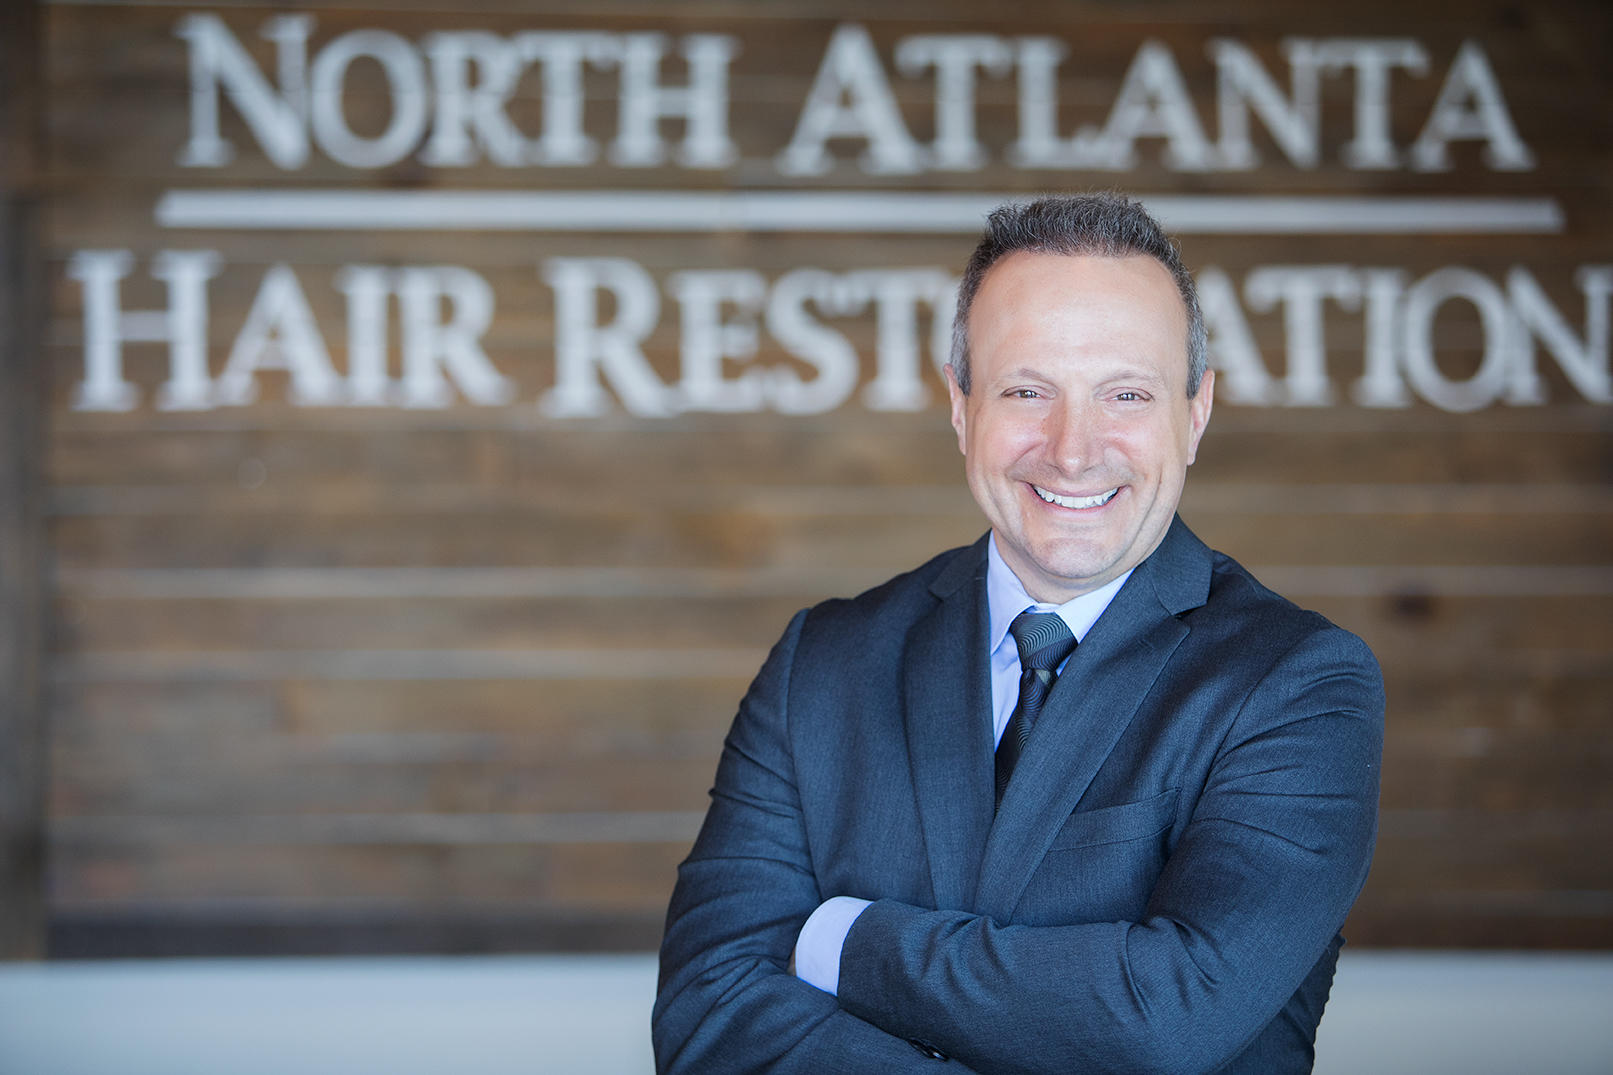 North Atlanta Hair Restoration